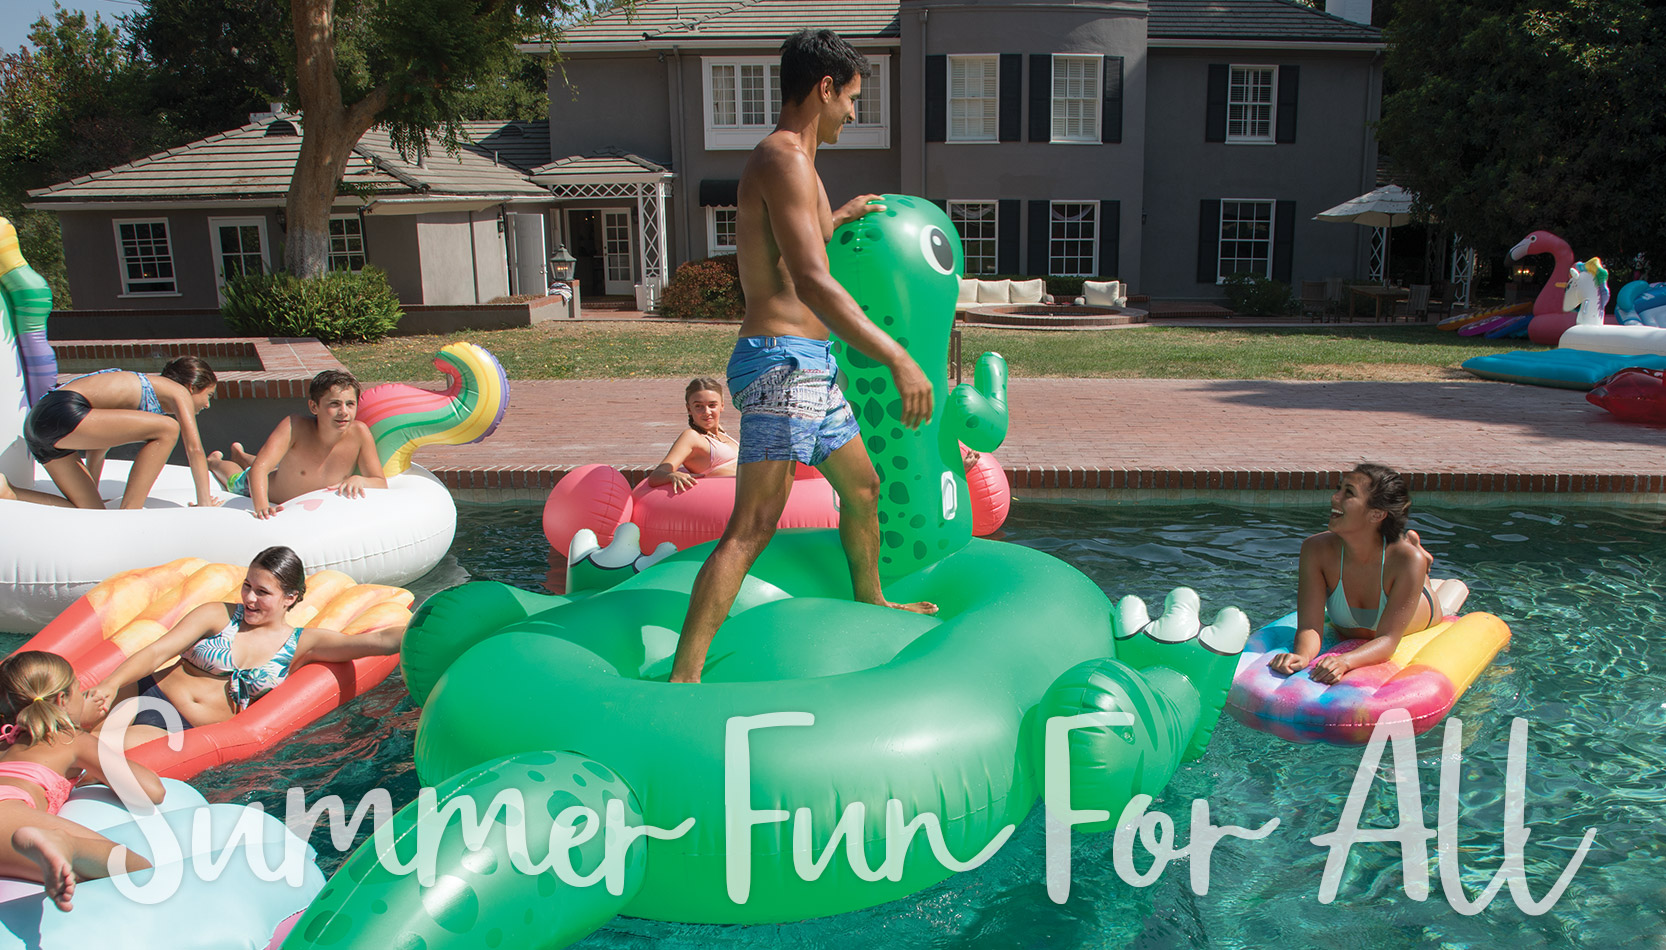 Top-Banners_InflatablesPage4A.jpg